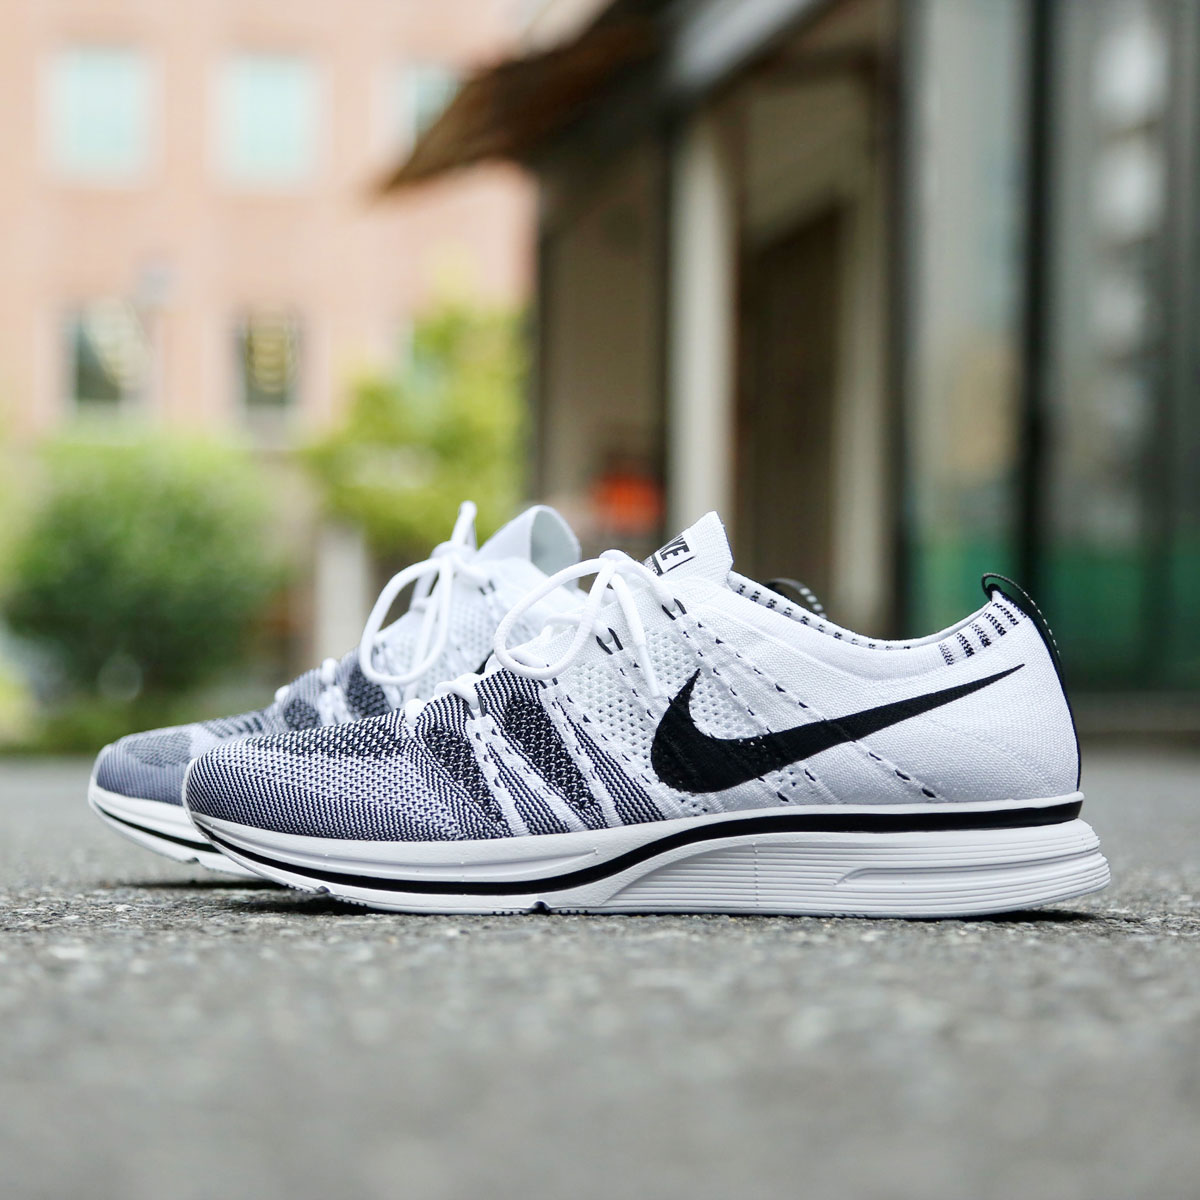 cbc595cbcc4e FLYKNIT TRAINER which came up in ロンチ of FLYKNIT is reproduction of the  expectation. One pair that I right want now that adopted an original color